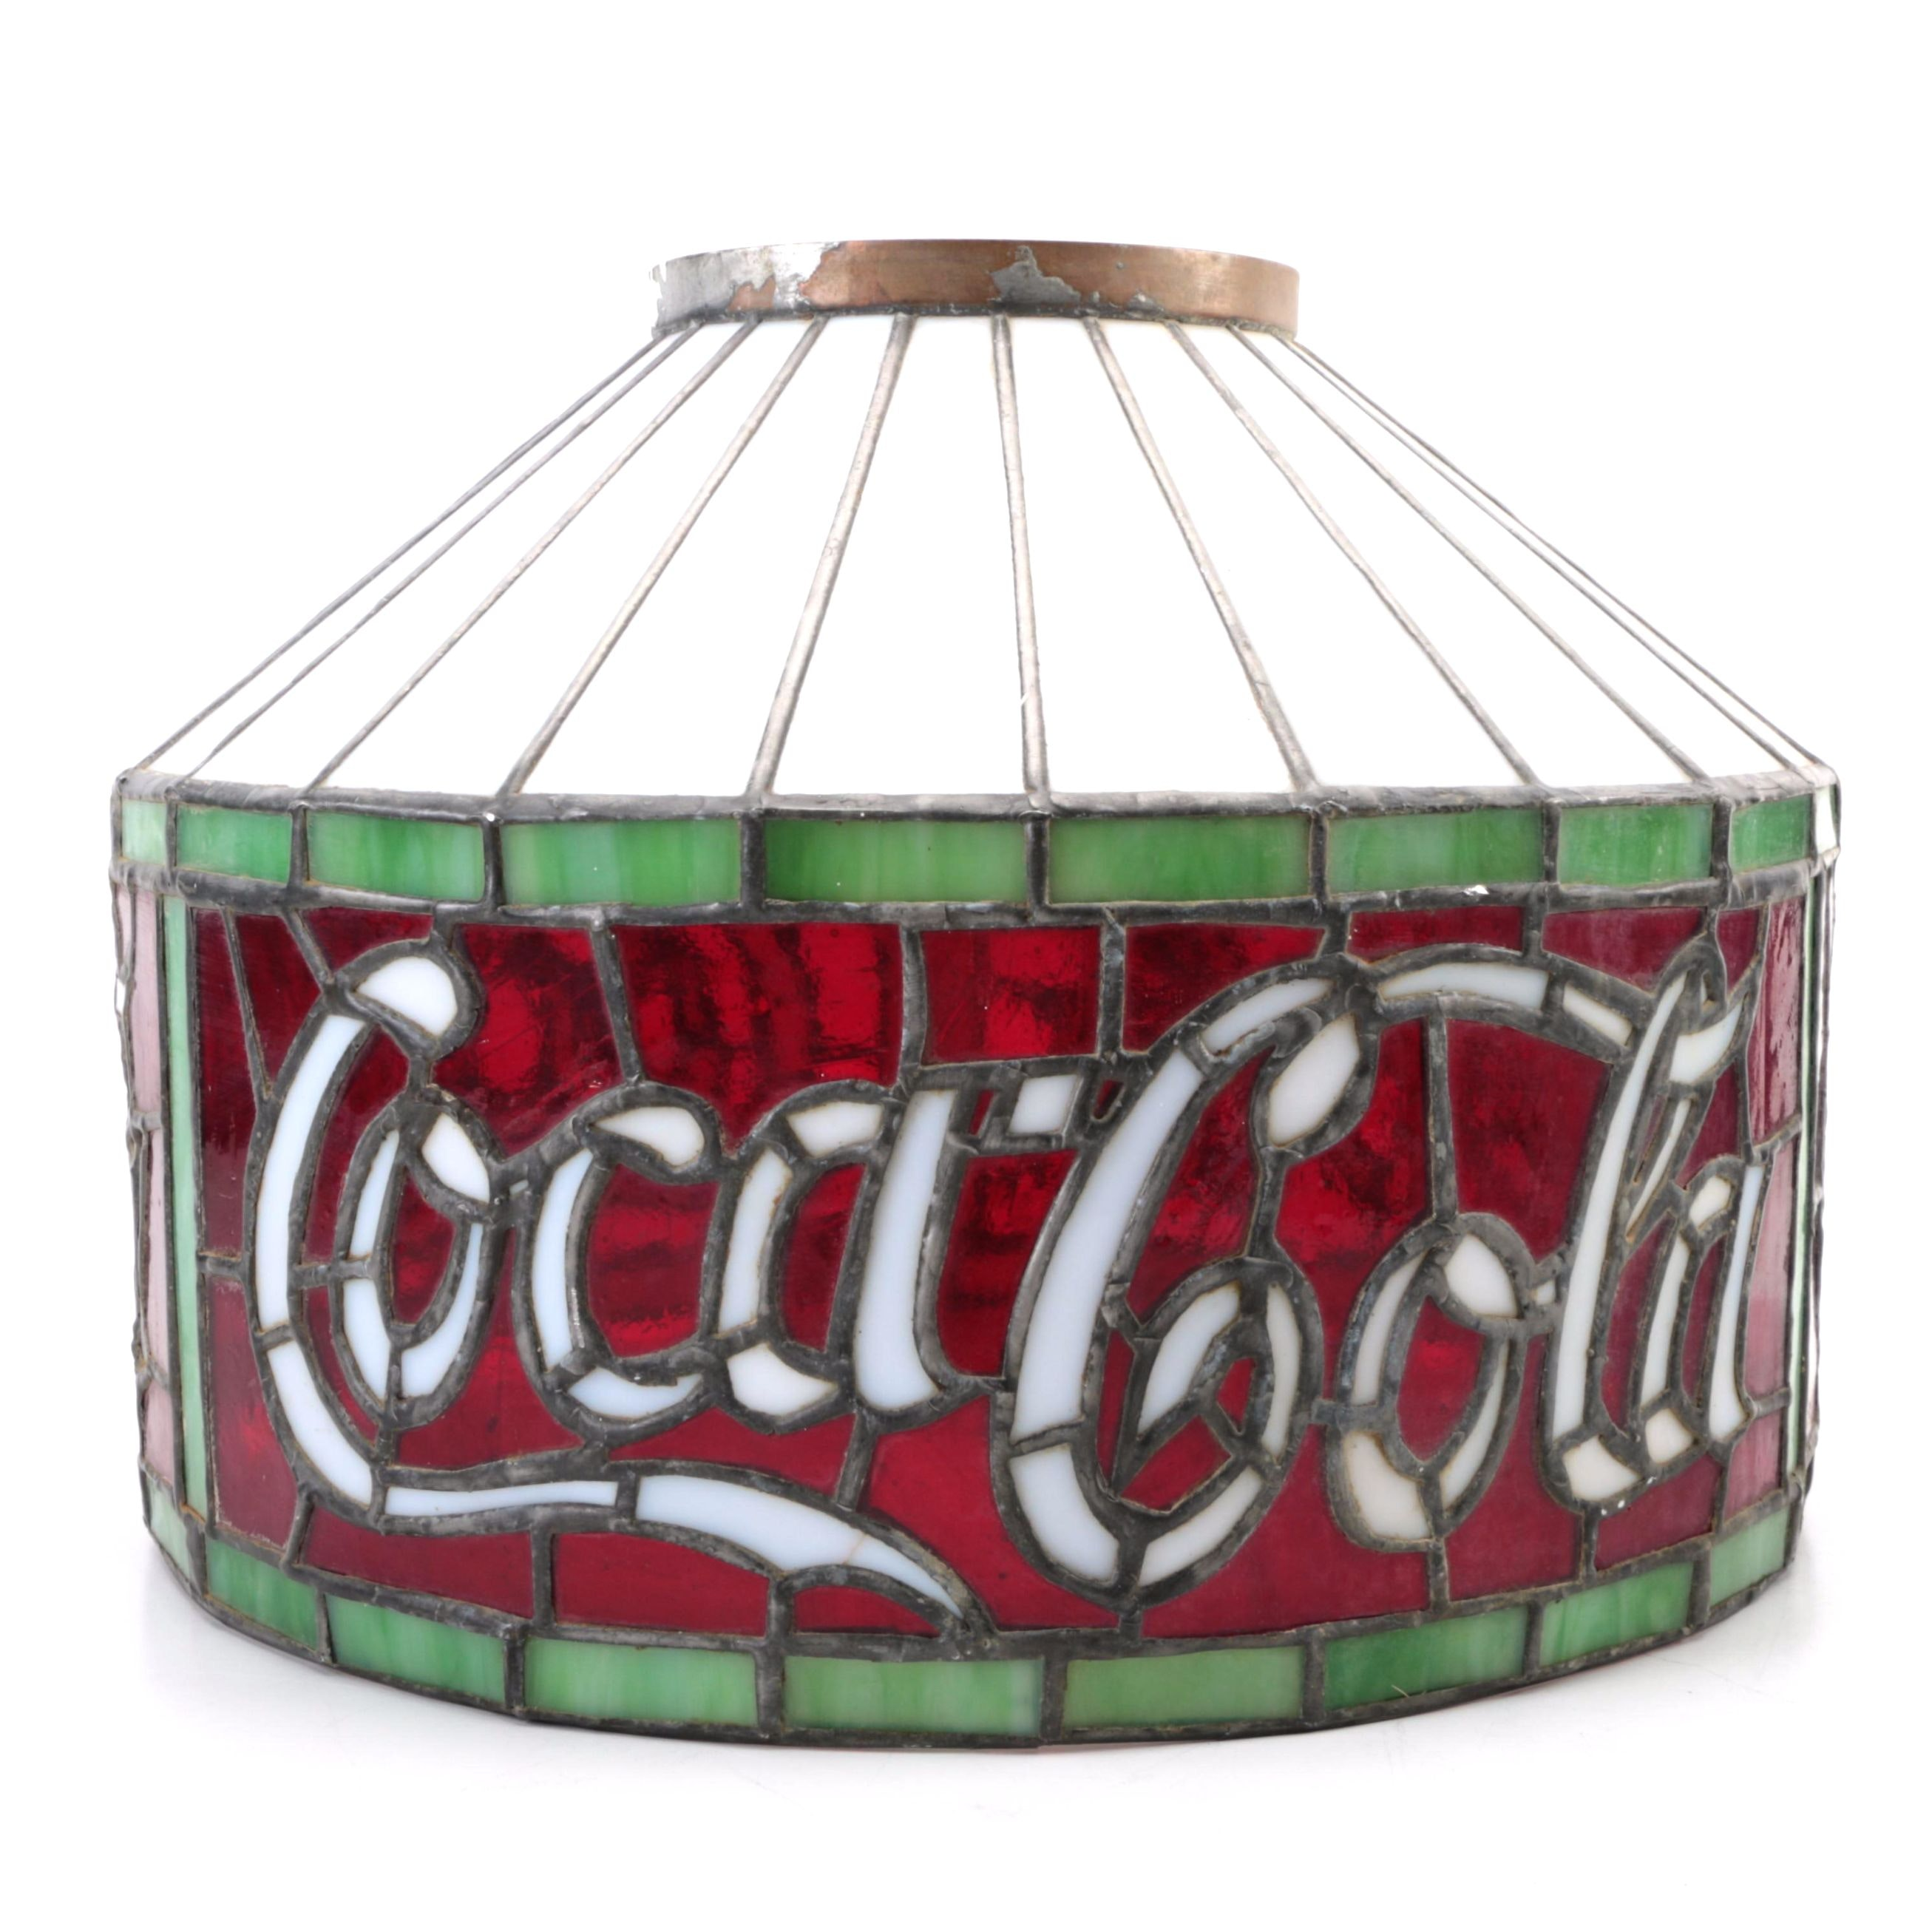 Tiffany Style Stained Glass Coca Cola Lamp Shade ...